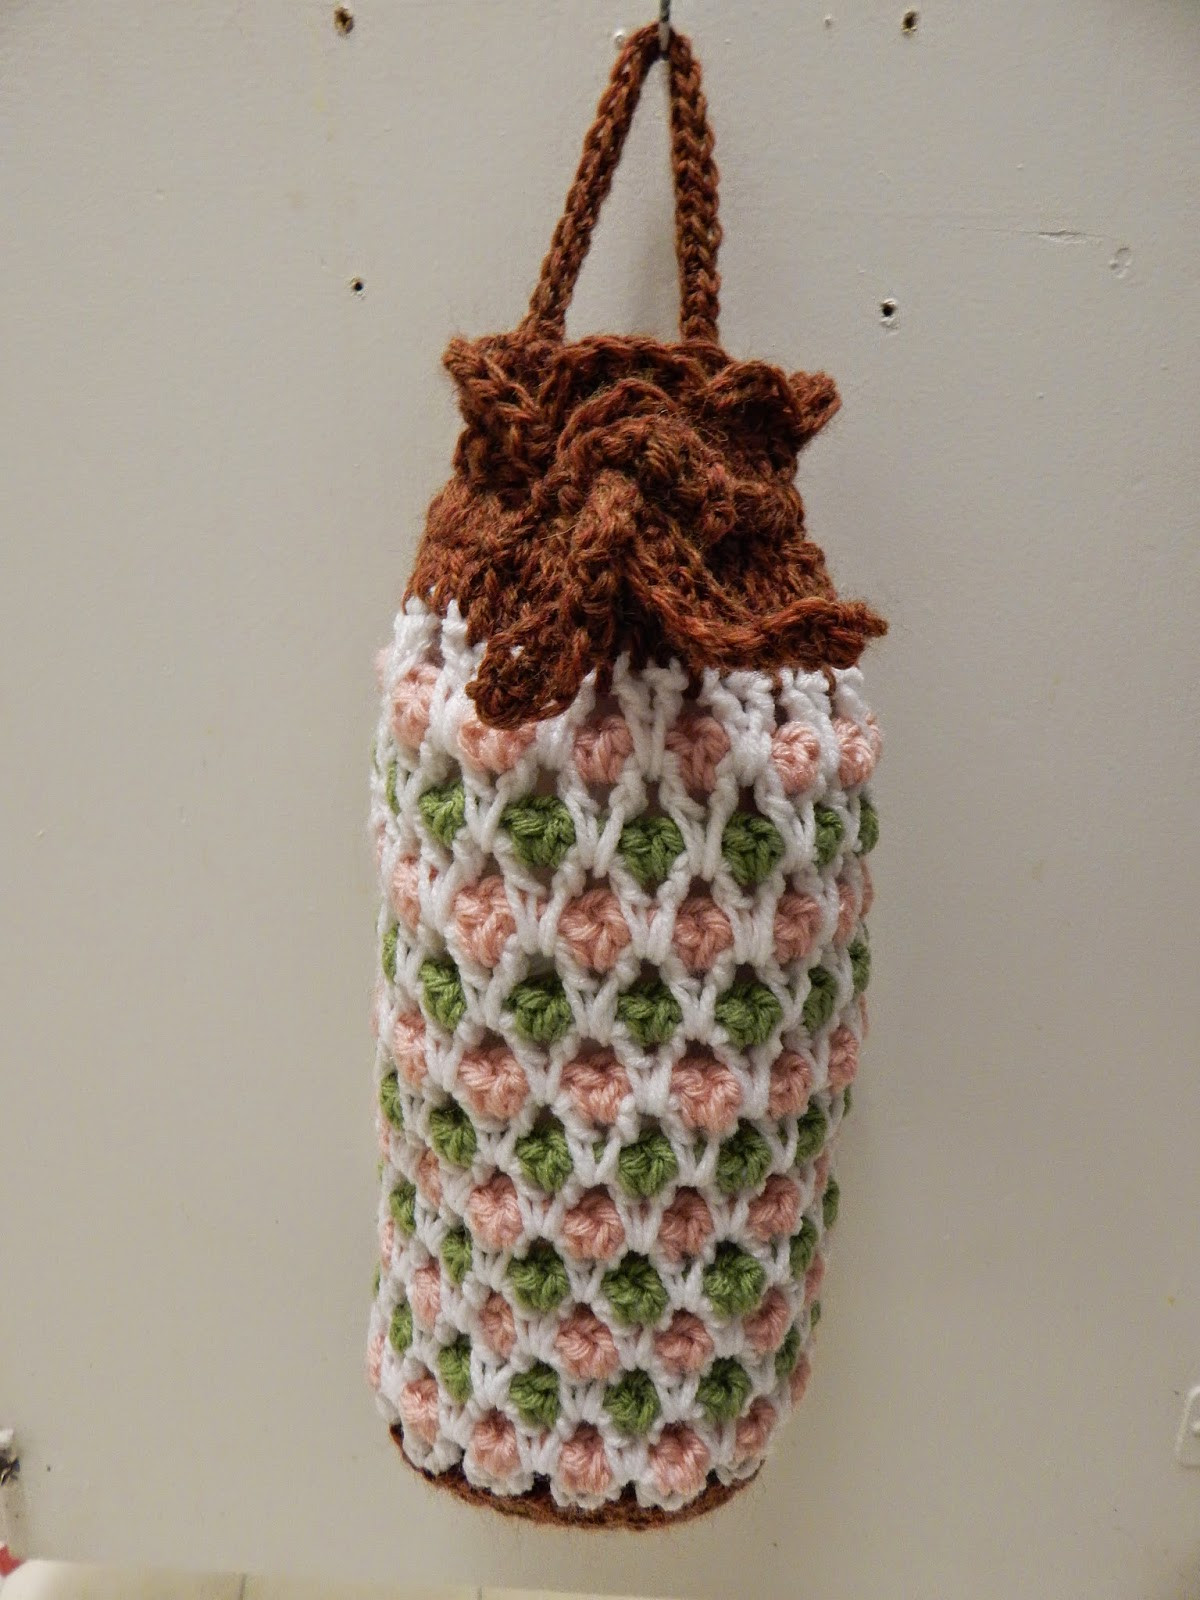 Crochet Grocery Bags Luxury I M Going to Make It after All Crochet Plastic Grocery Of New 45 Pictures Crochet Grocery Bags